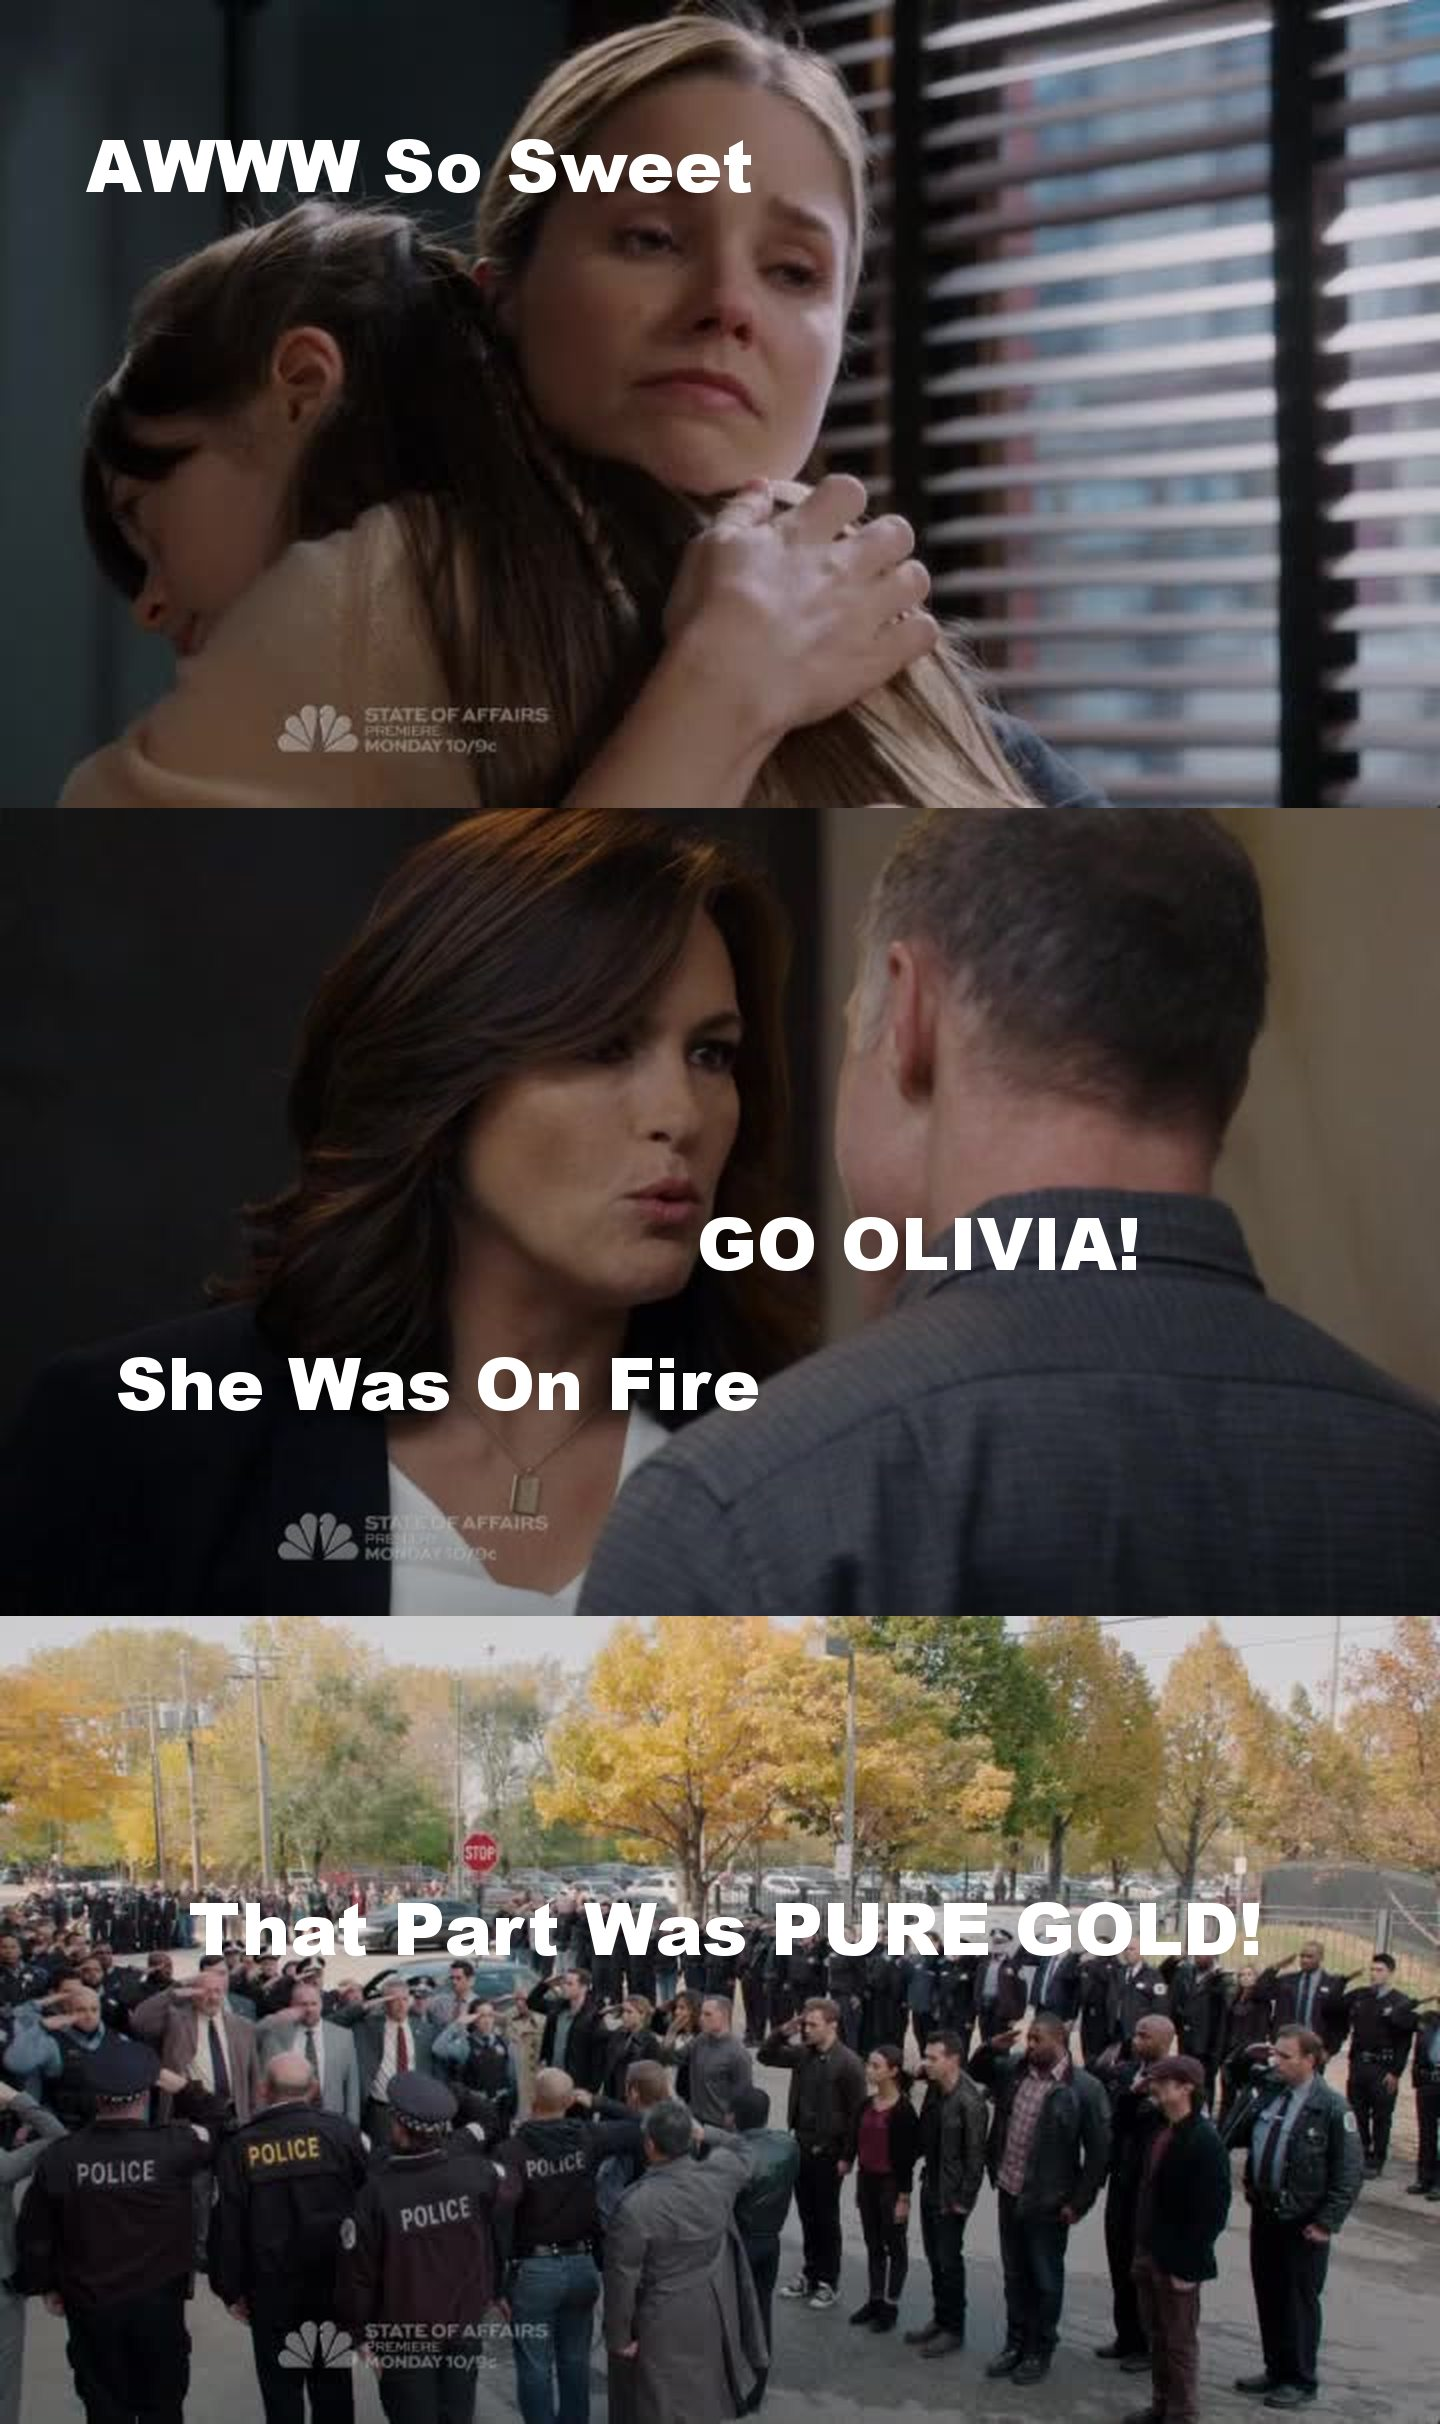 FANTASTIC CROSSOVER! LOVE Every Minute Of It  So Much Drama/Action Kudos To All 3 Shows CF & SVU & CPD  I Just Wish We Had More Scenes Of Lindsay & Halstead    PS: Sophia Bush & Mariska Hargitay Stole The Show.They Were Amazing!  APPLAUD APPLAUD APPLAUD!